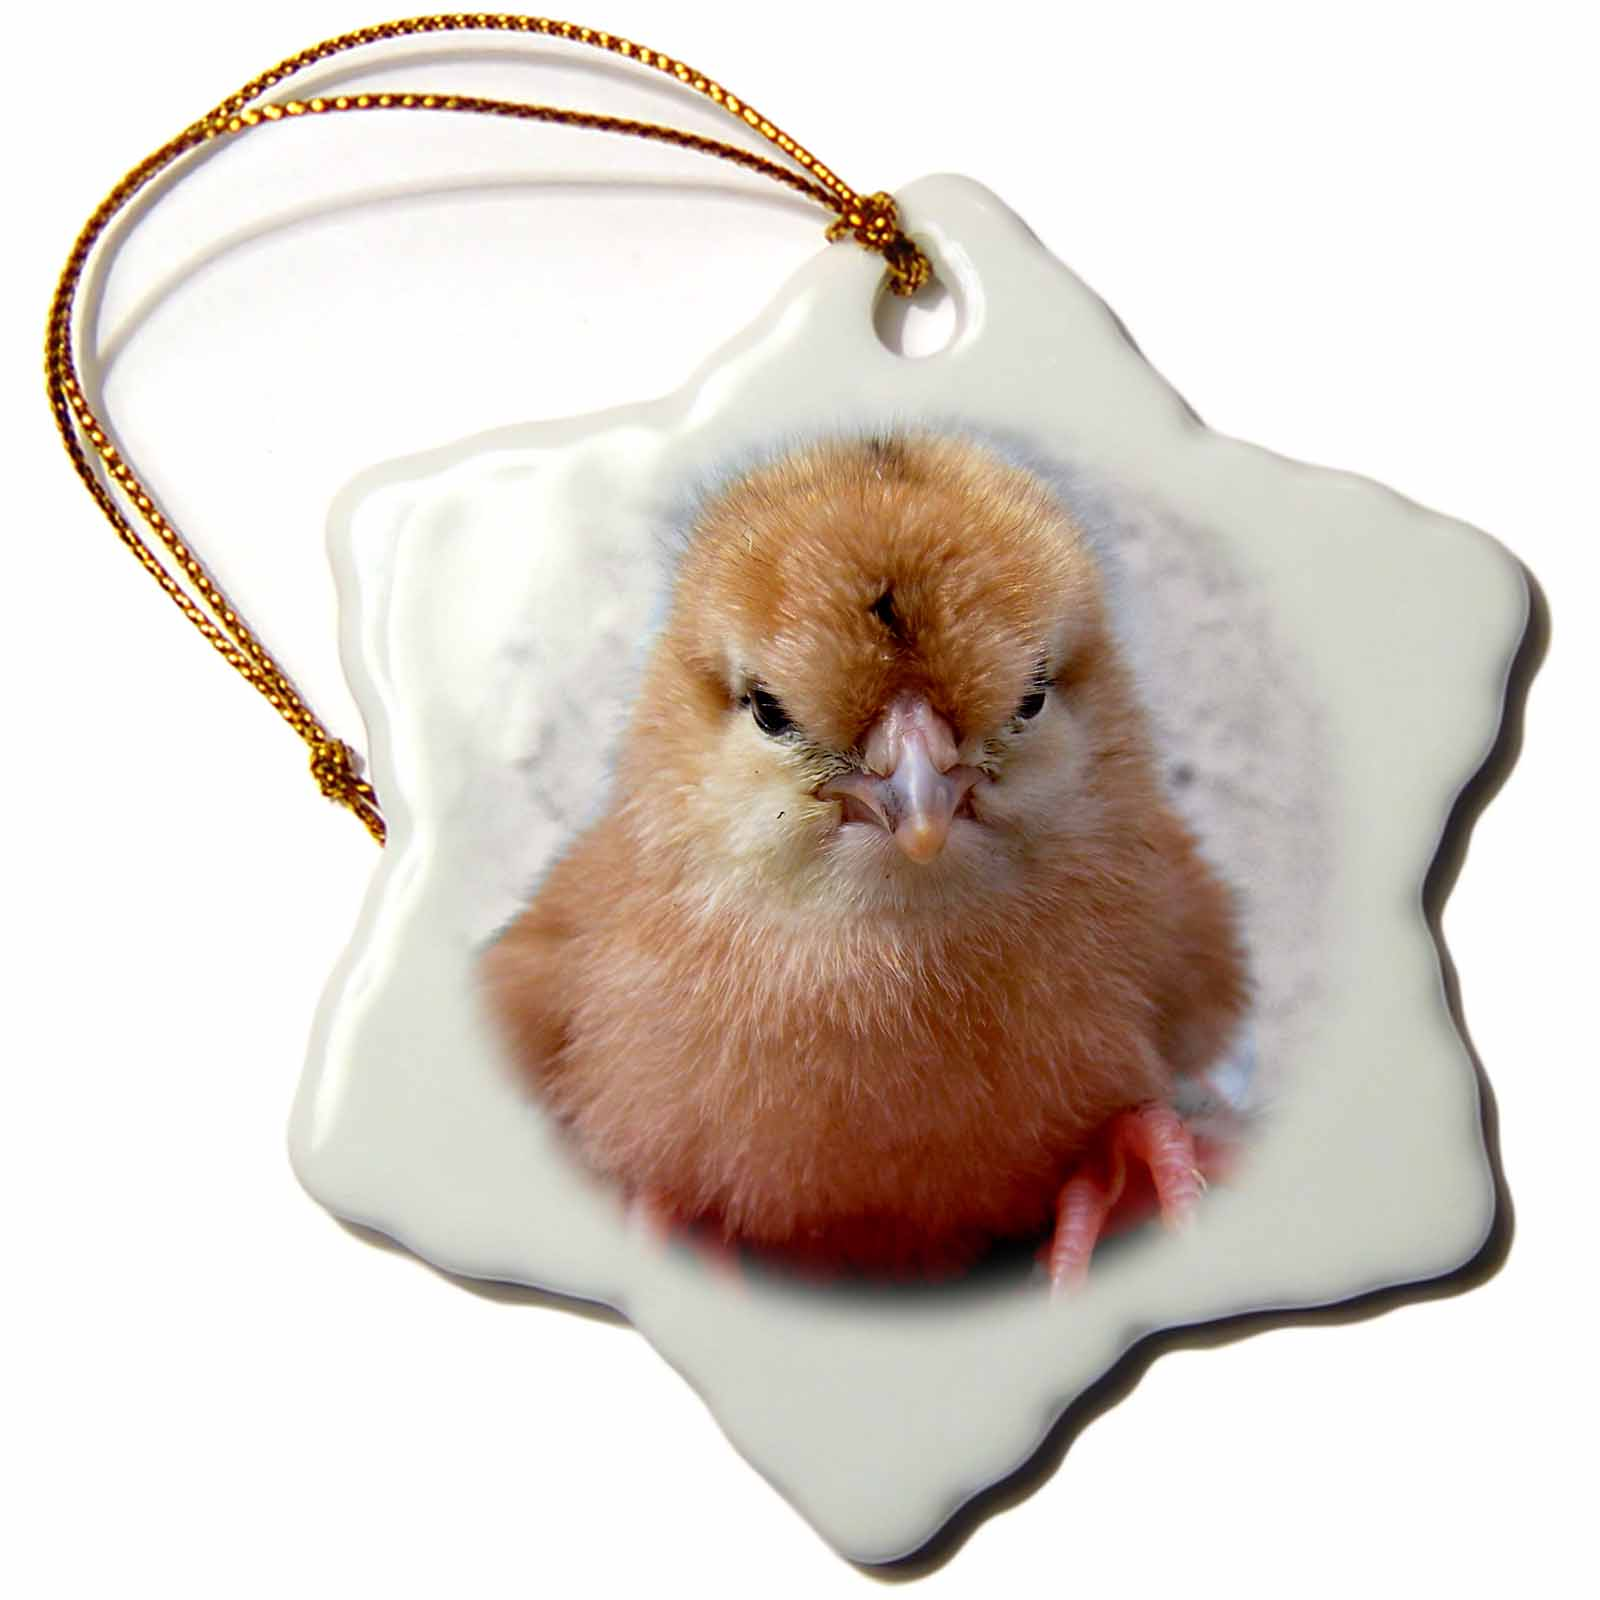 3dRose Silkie Chicken Chick in hand photograph, Snowflake Ornament, Porcelain, 3-inch